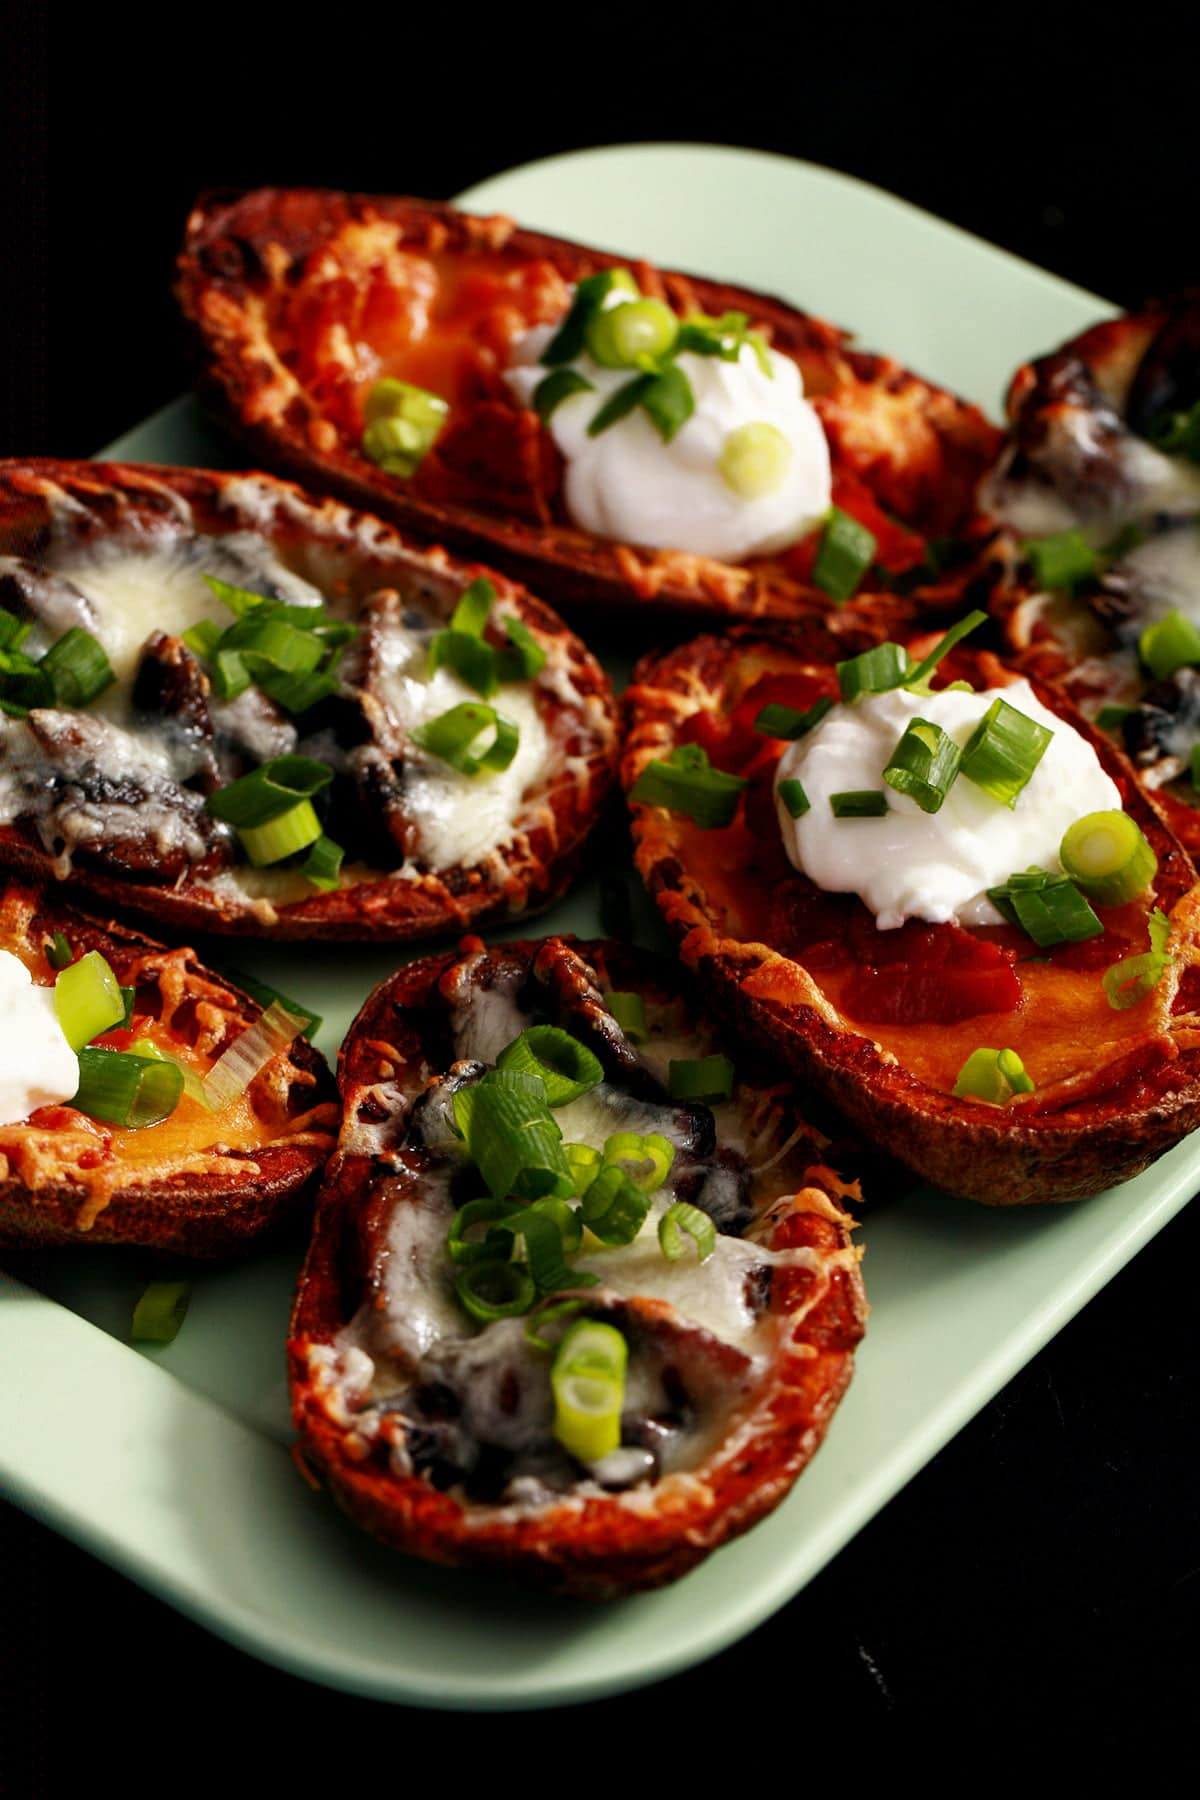 A pale green plate displays 8 bacon roasted potato skins. Half are filled with mushrooms and swiss cheese, the other half have bacon and cheddar as the filling, some topped with sour cream. Most potato skins are sprinkled with sliced green onion.